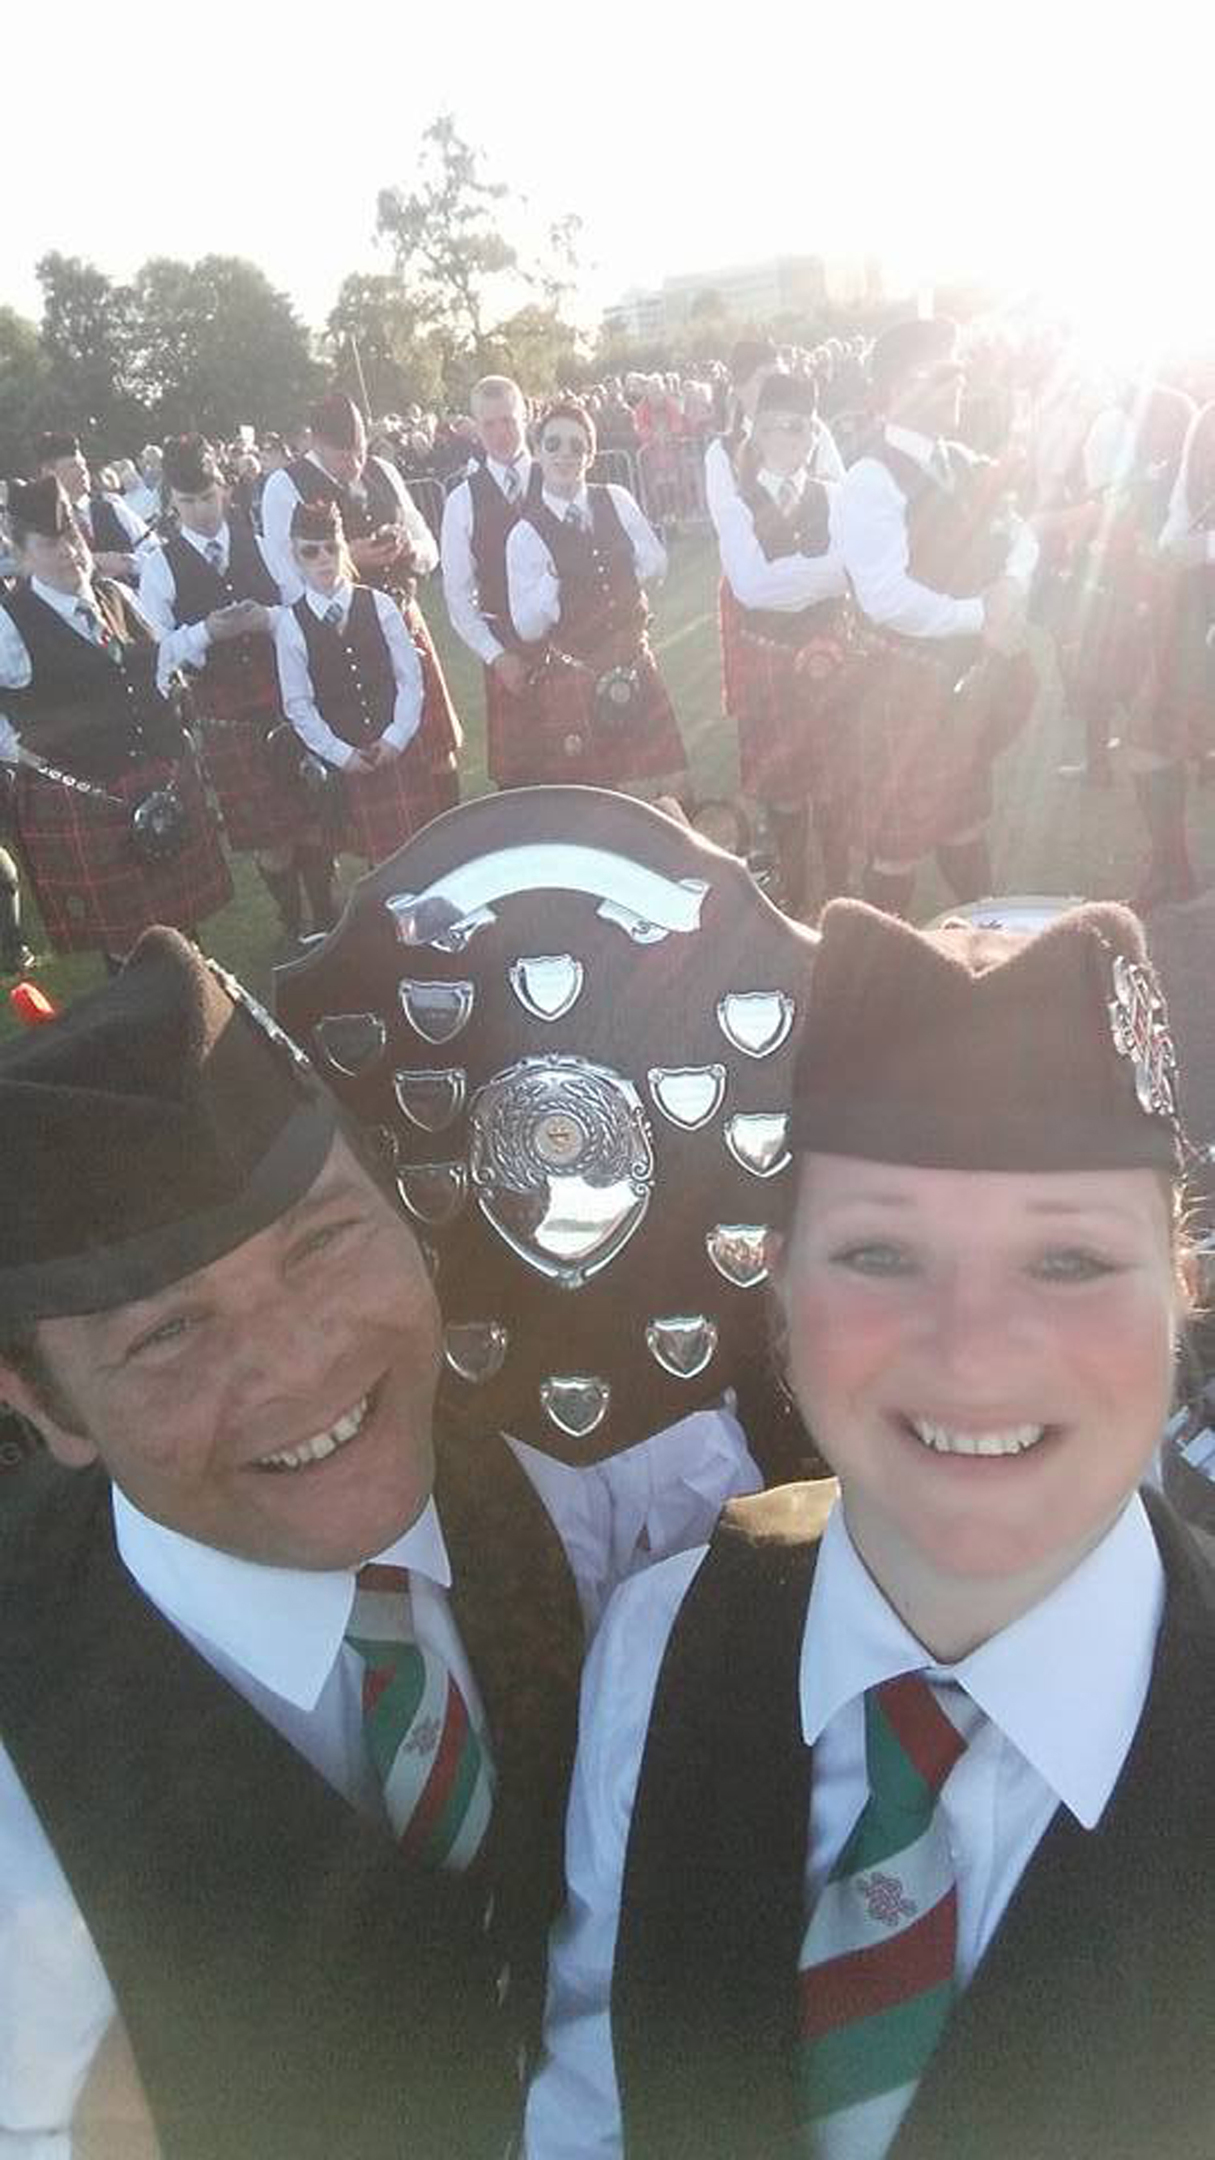 Portlethen and District Pipe Band celebrating at the event.